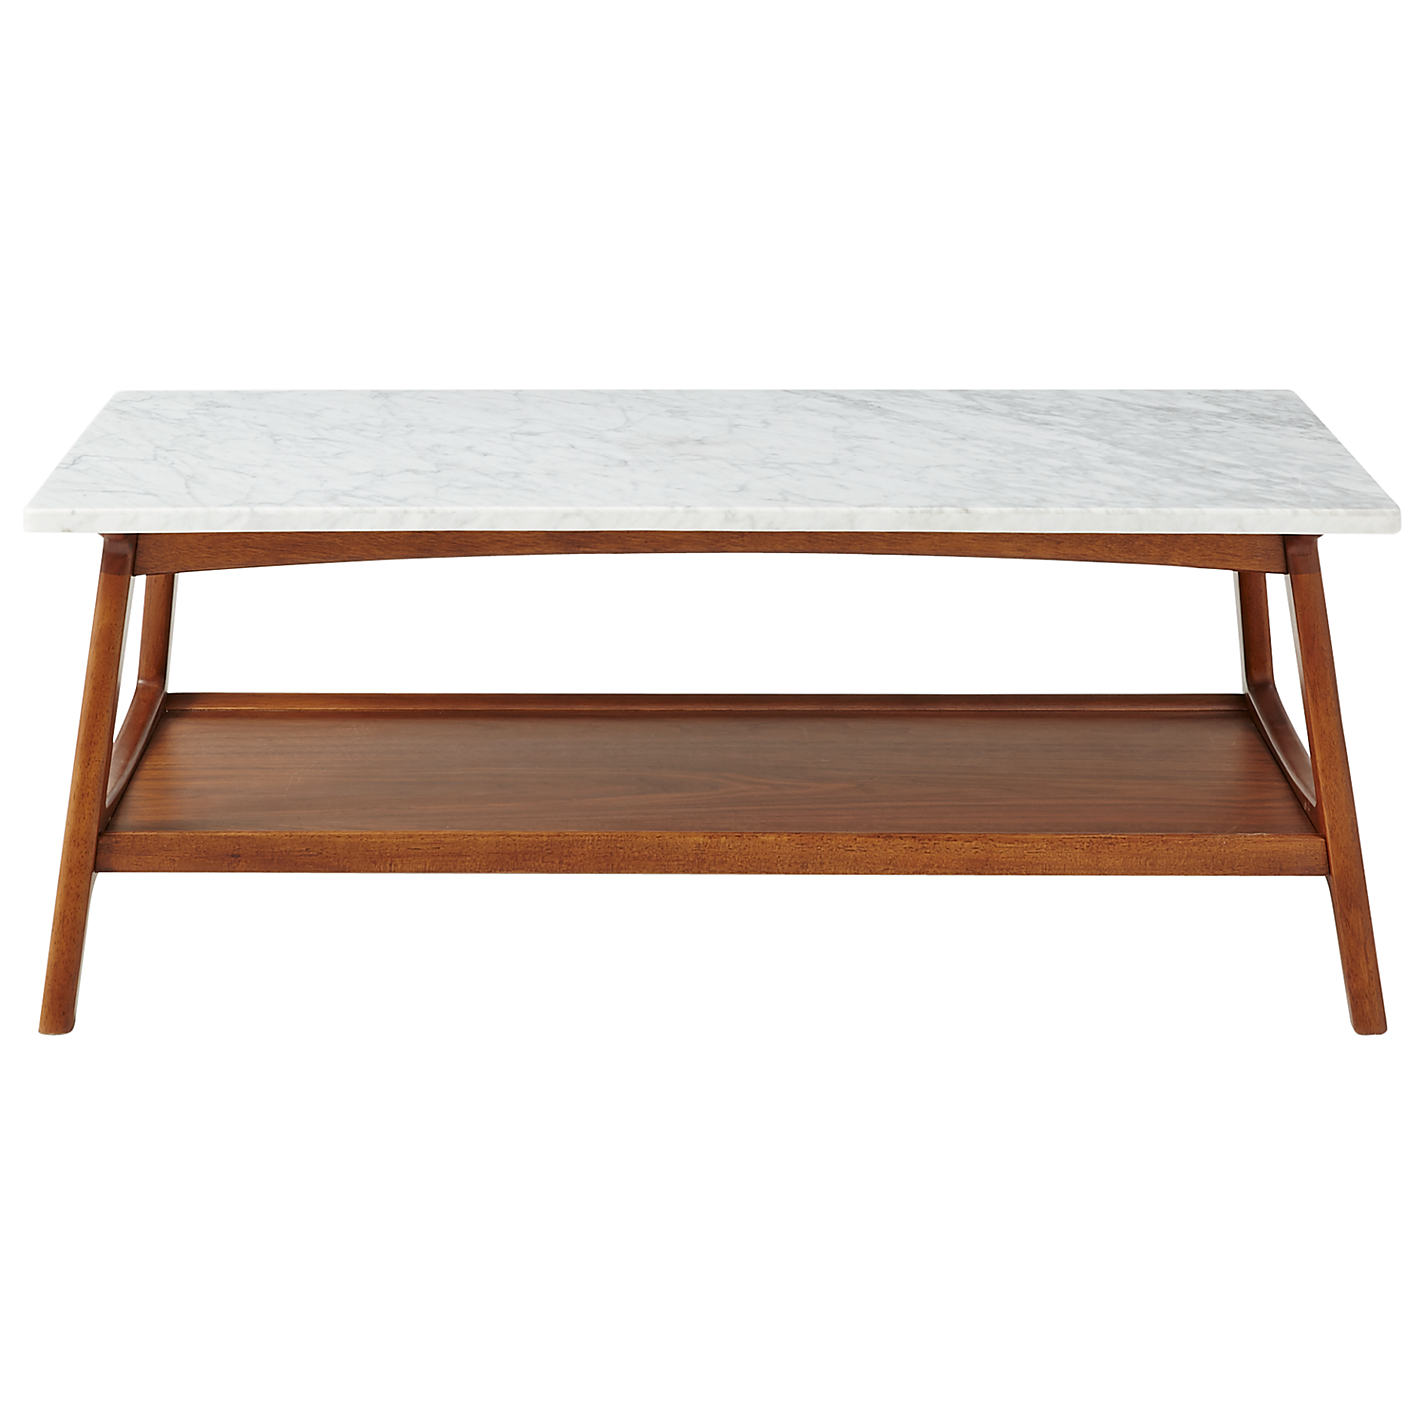 Buy west elm Reeve Mid Century Rectangular Coffee Table